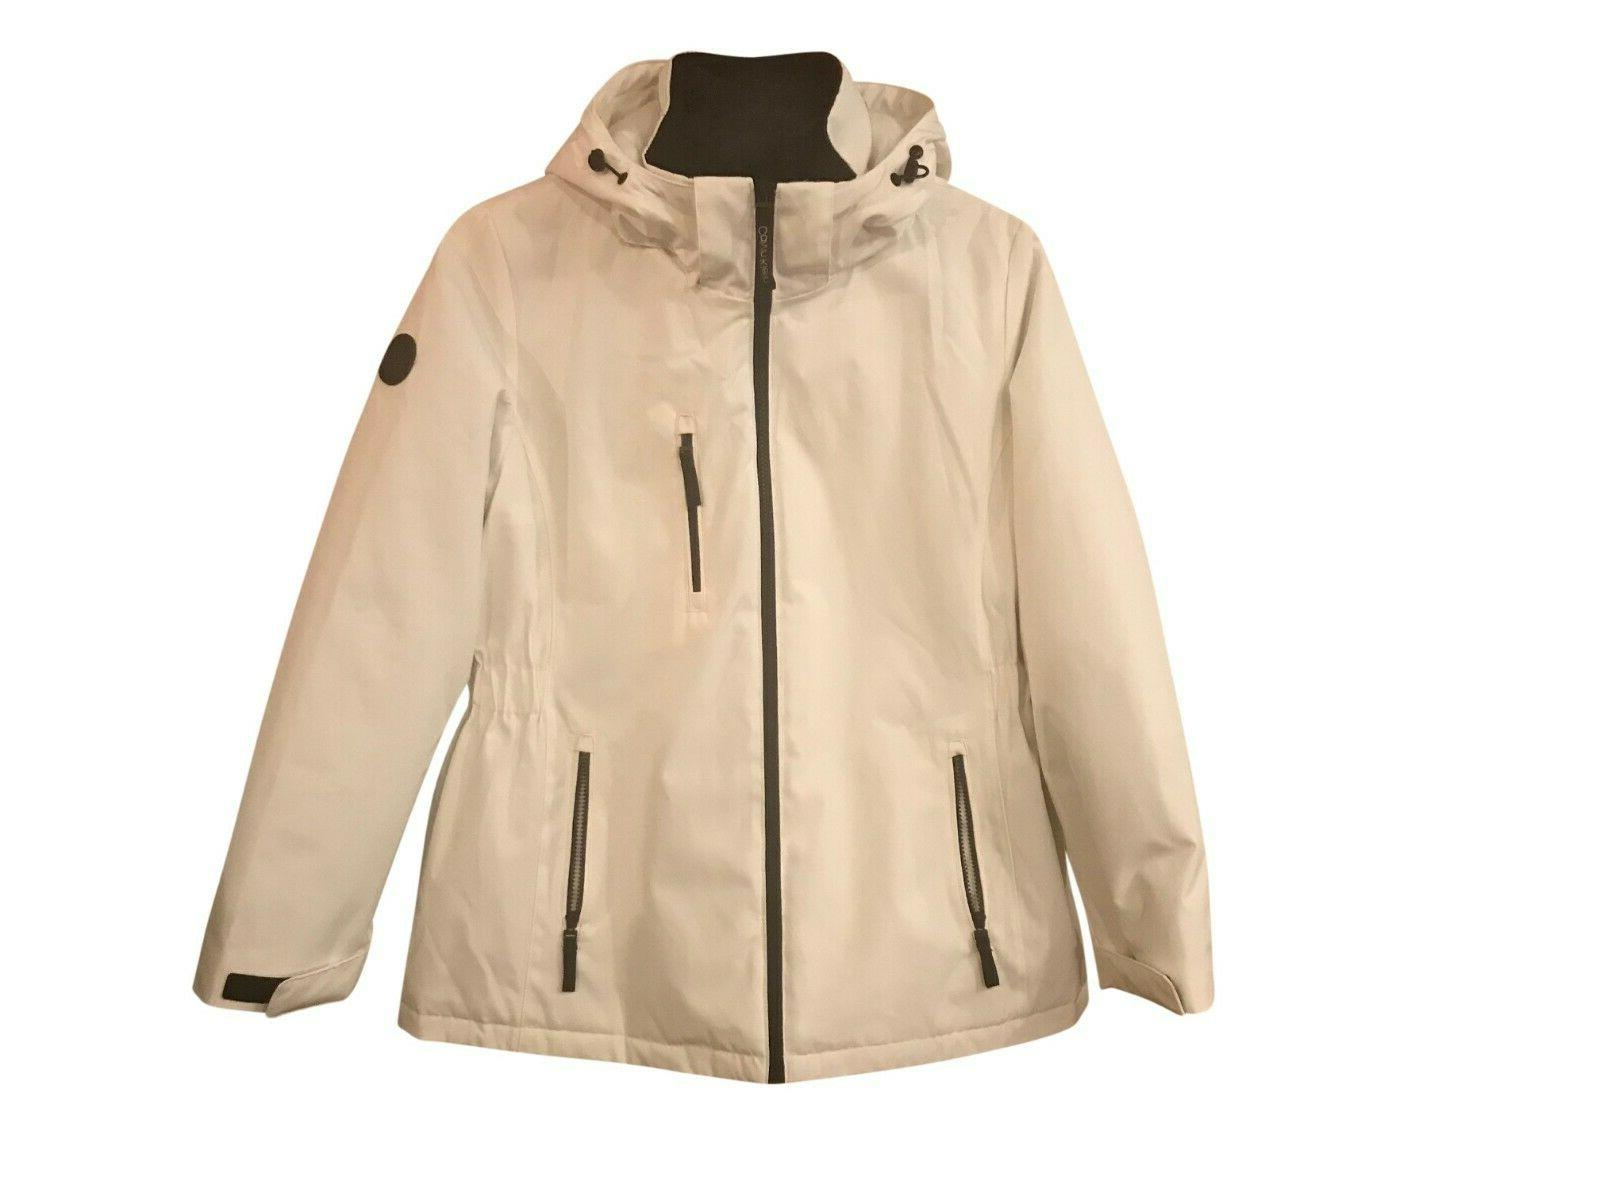 Calvin Klein NWT Size 2X-Large Women's System Hooded Jacket